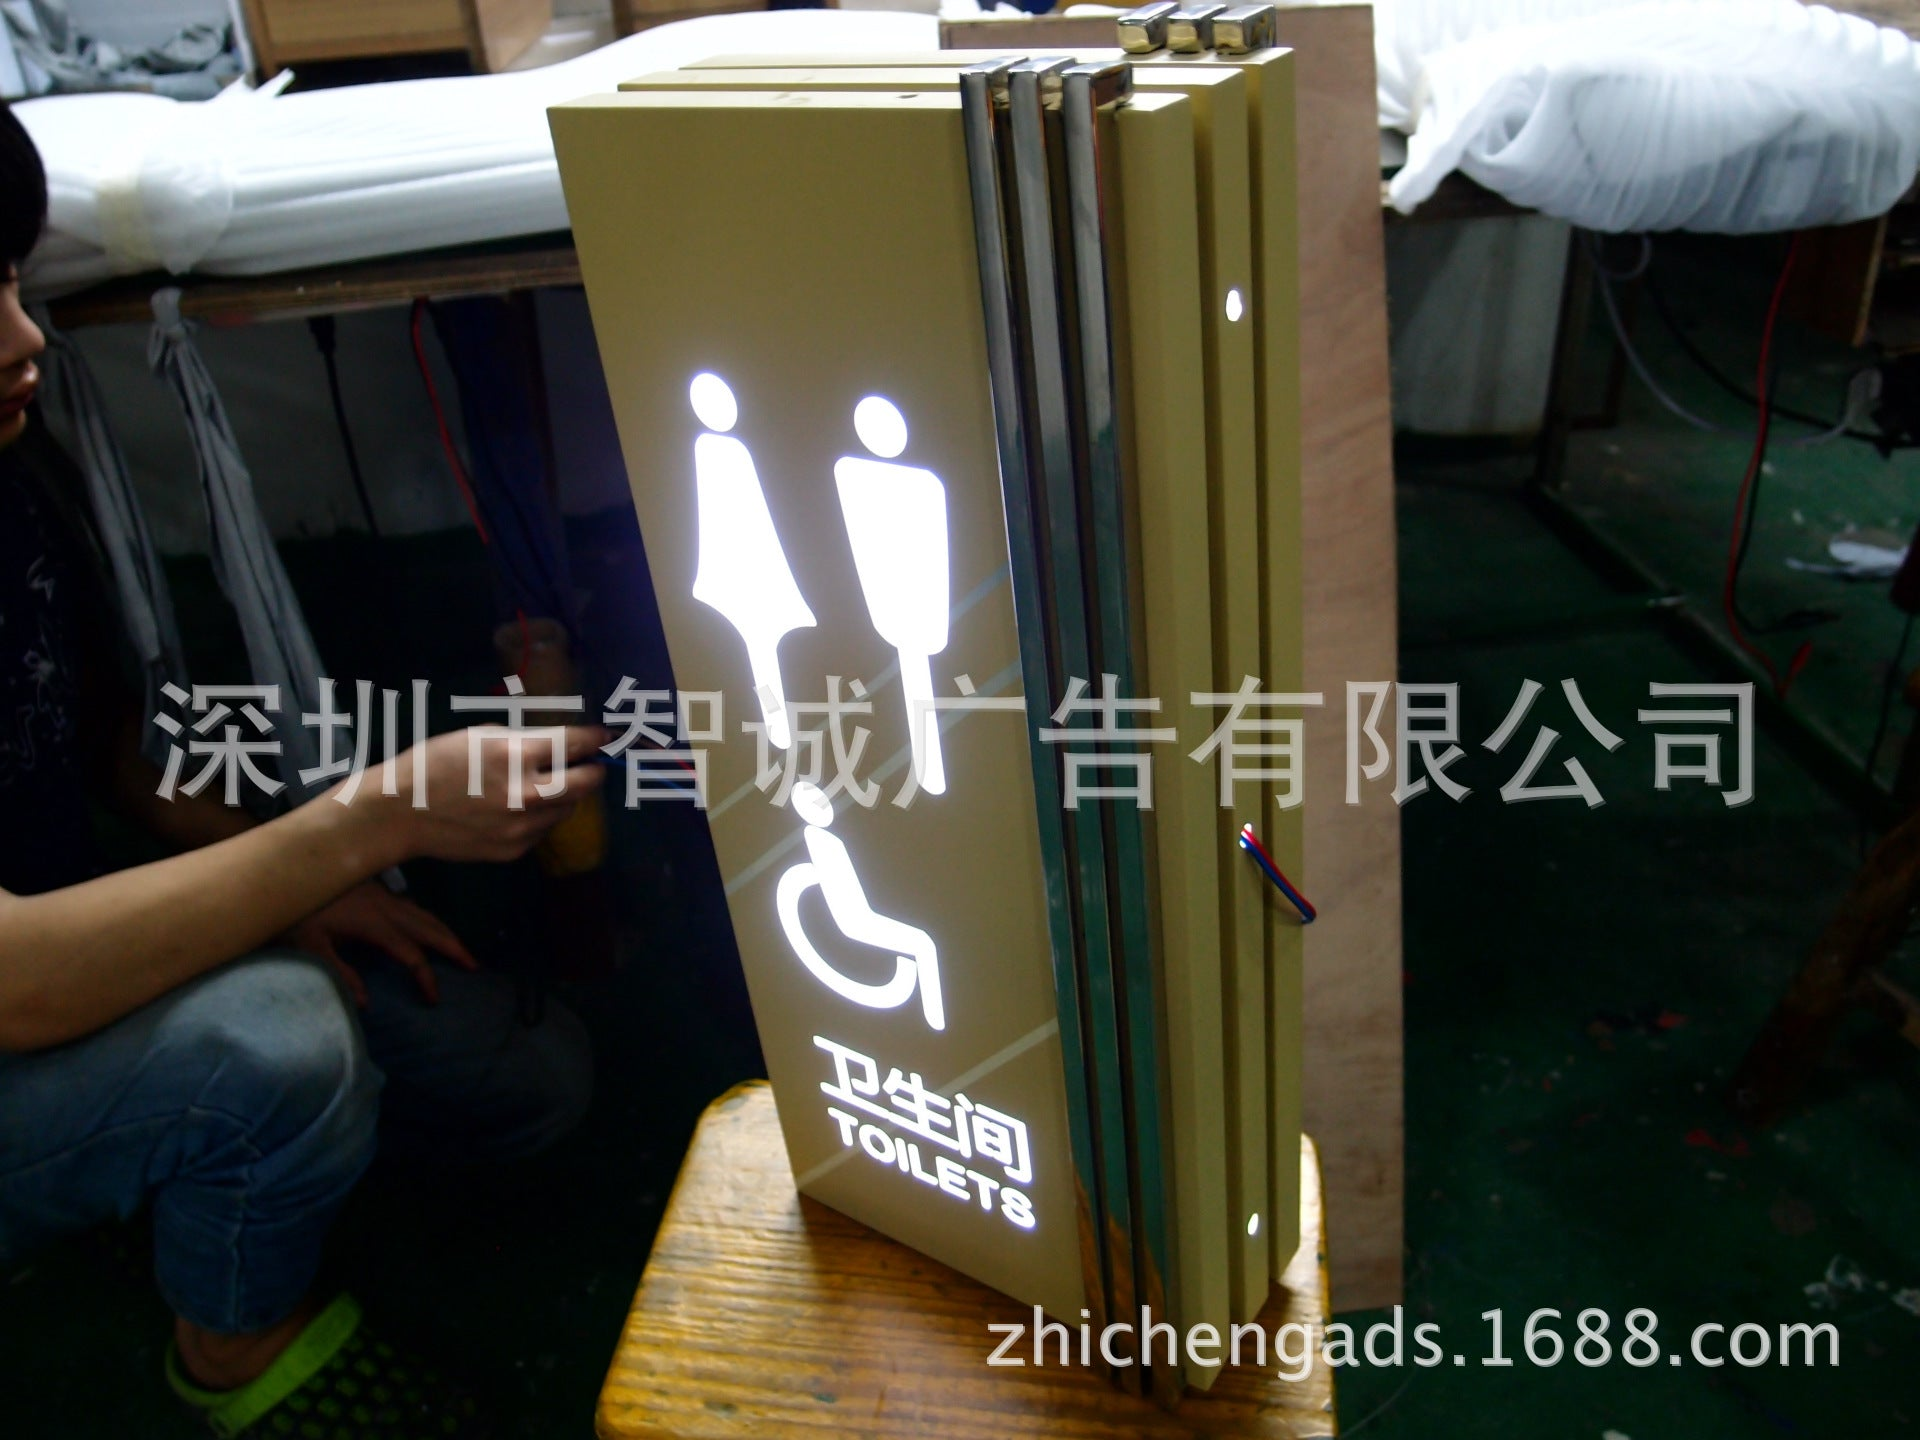 High-end shopping mall LED light box, luminous tag, bathroom card, manufacturer, material price